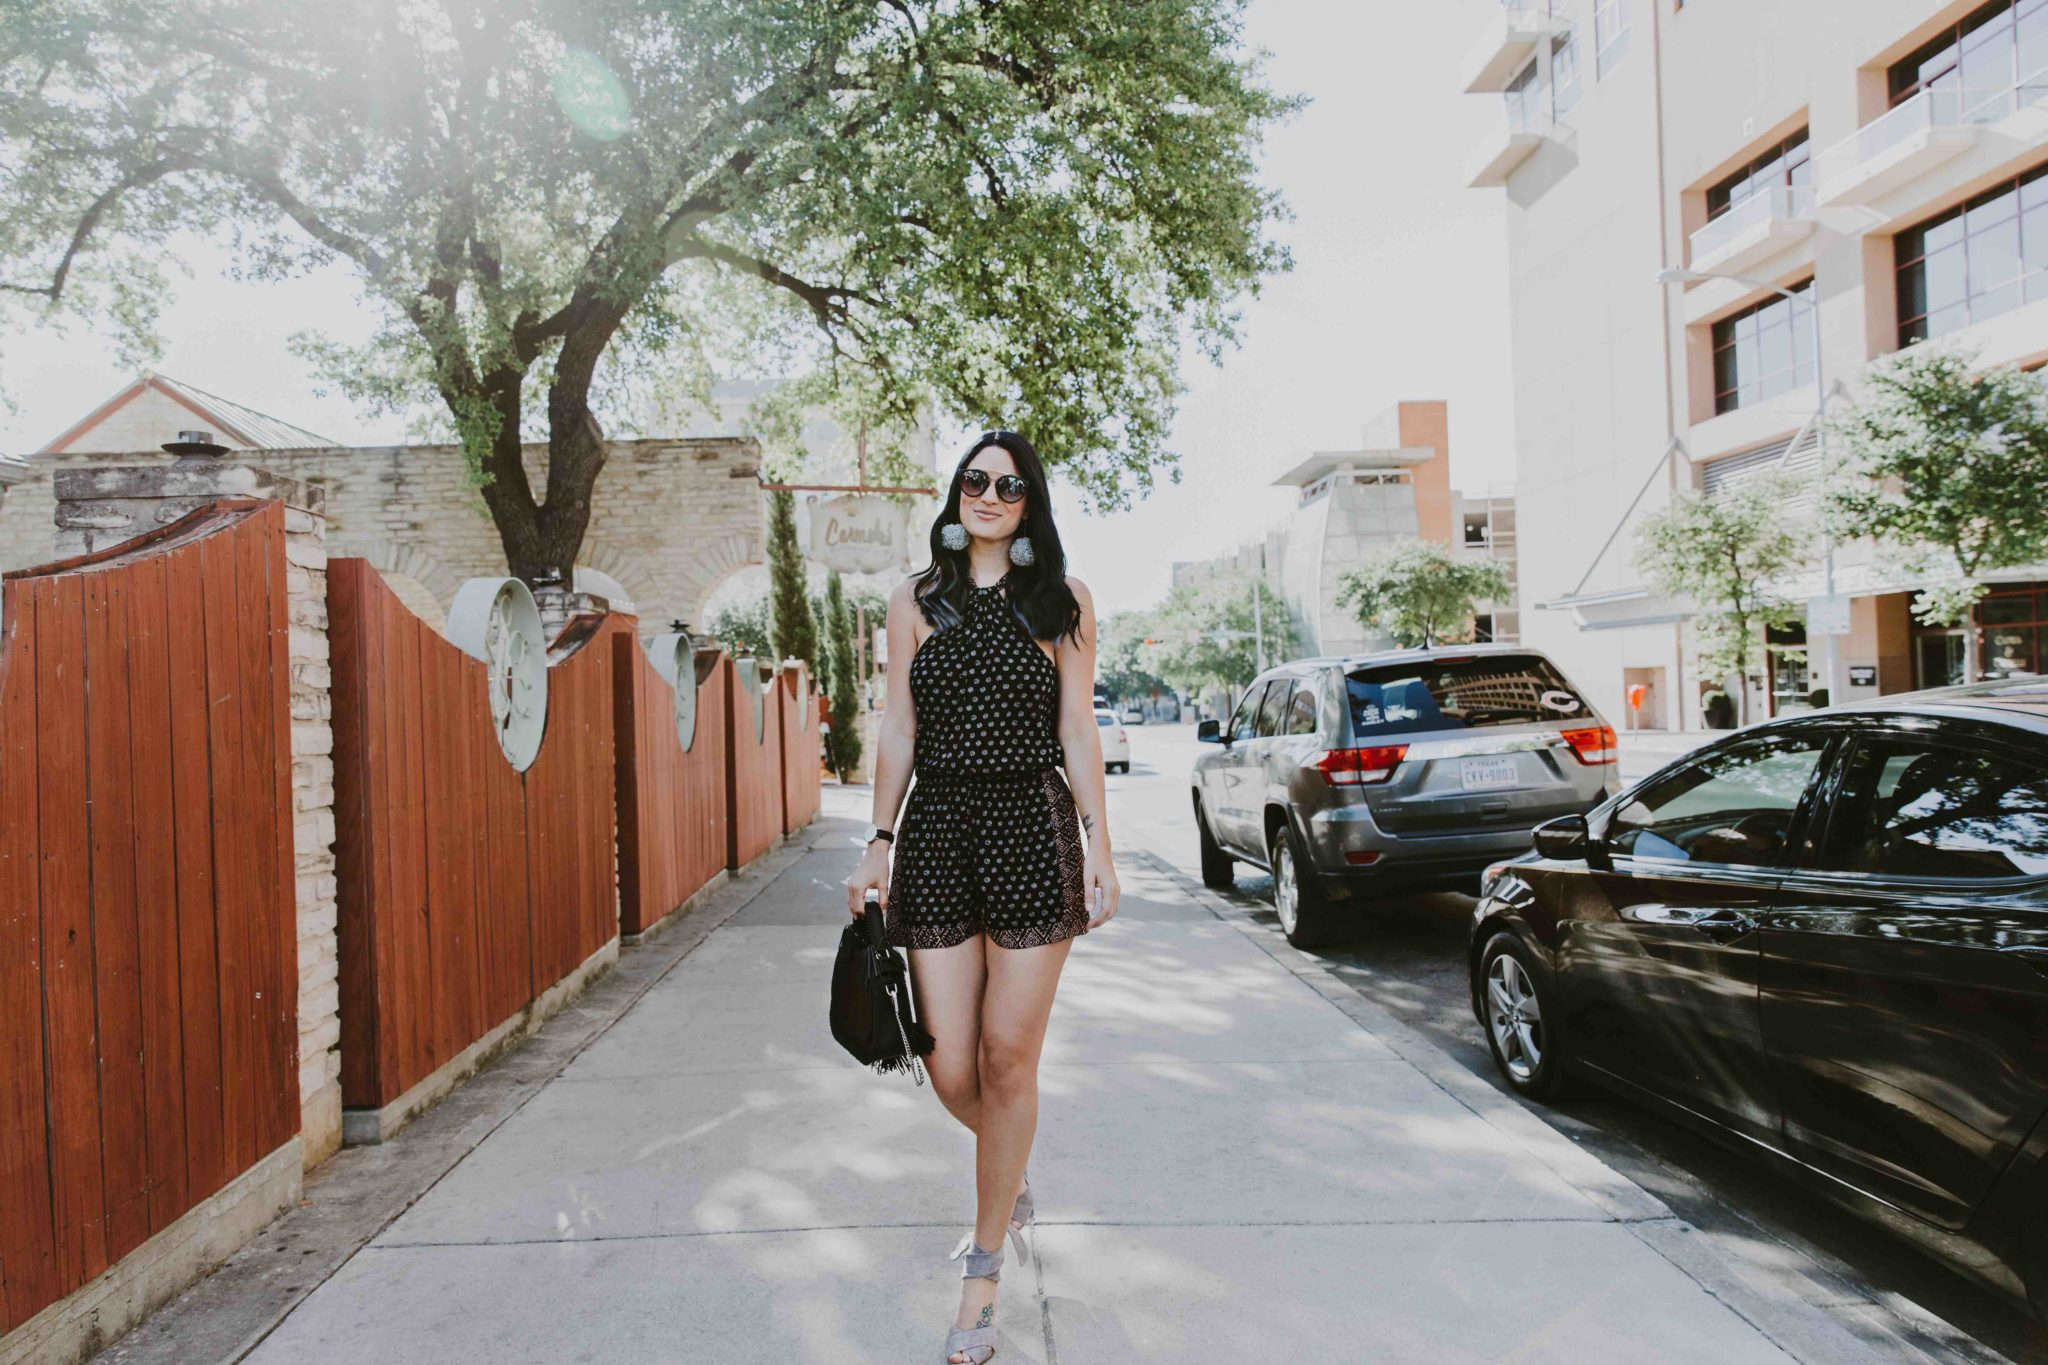 DTKAustin shares her favorite detailed romper and shoes from Splendid plus a gorgeous black leather bag from Rebecca Minkoff. Click for more information and photos. | Black Summer Romper | how to style a romper | how to wear a romper | summer fashion tips | summer outfit ideas | summer style tips | what to wear for summer | warm weather fashion | fashion for summer | style tips for summer | outfit ideas for summer || Dressed to Kill